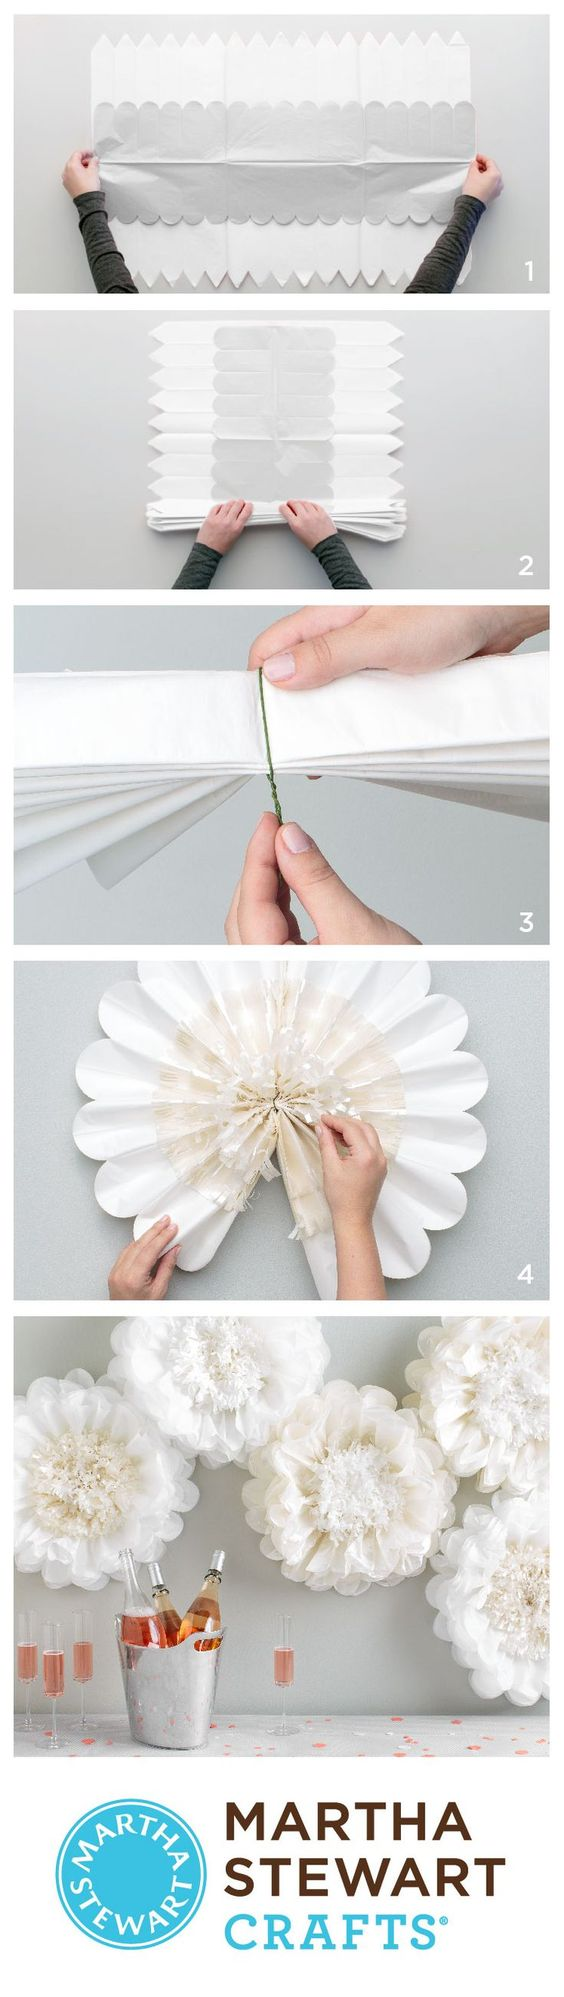 Its a pom pom party with martha stewart crafts flower pom poms add captivating decorations to your walls and doors with the martha stewart crafts holiday lodge tissue paper flower kit the tissue paper has an alluring mightylinksfo